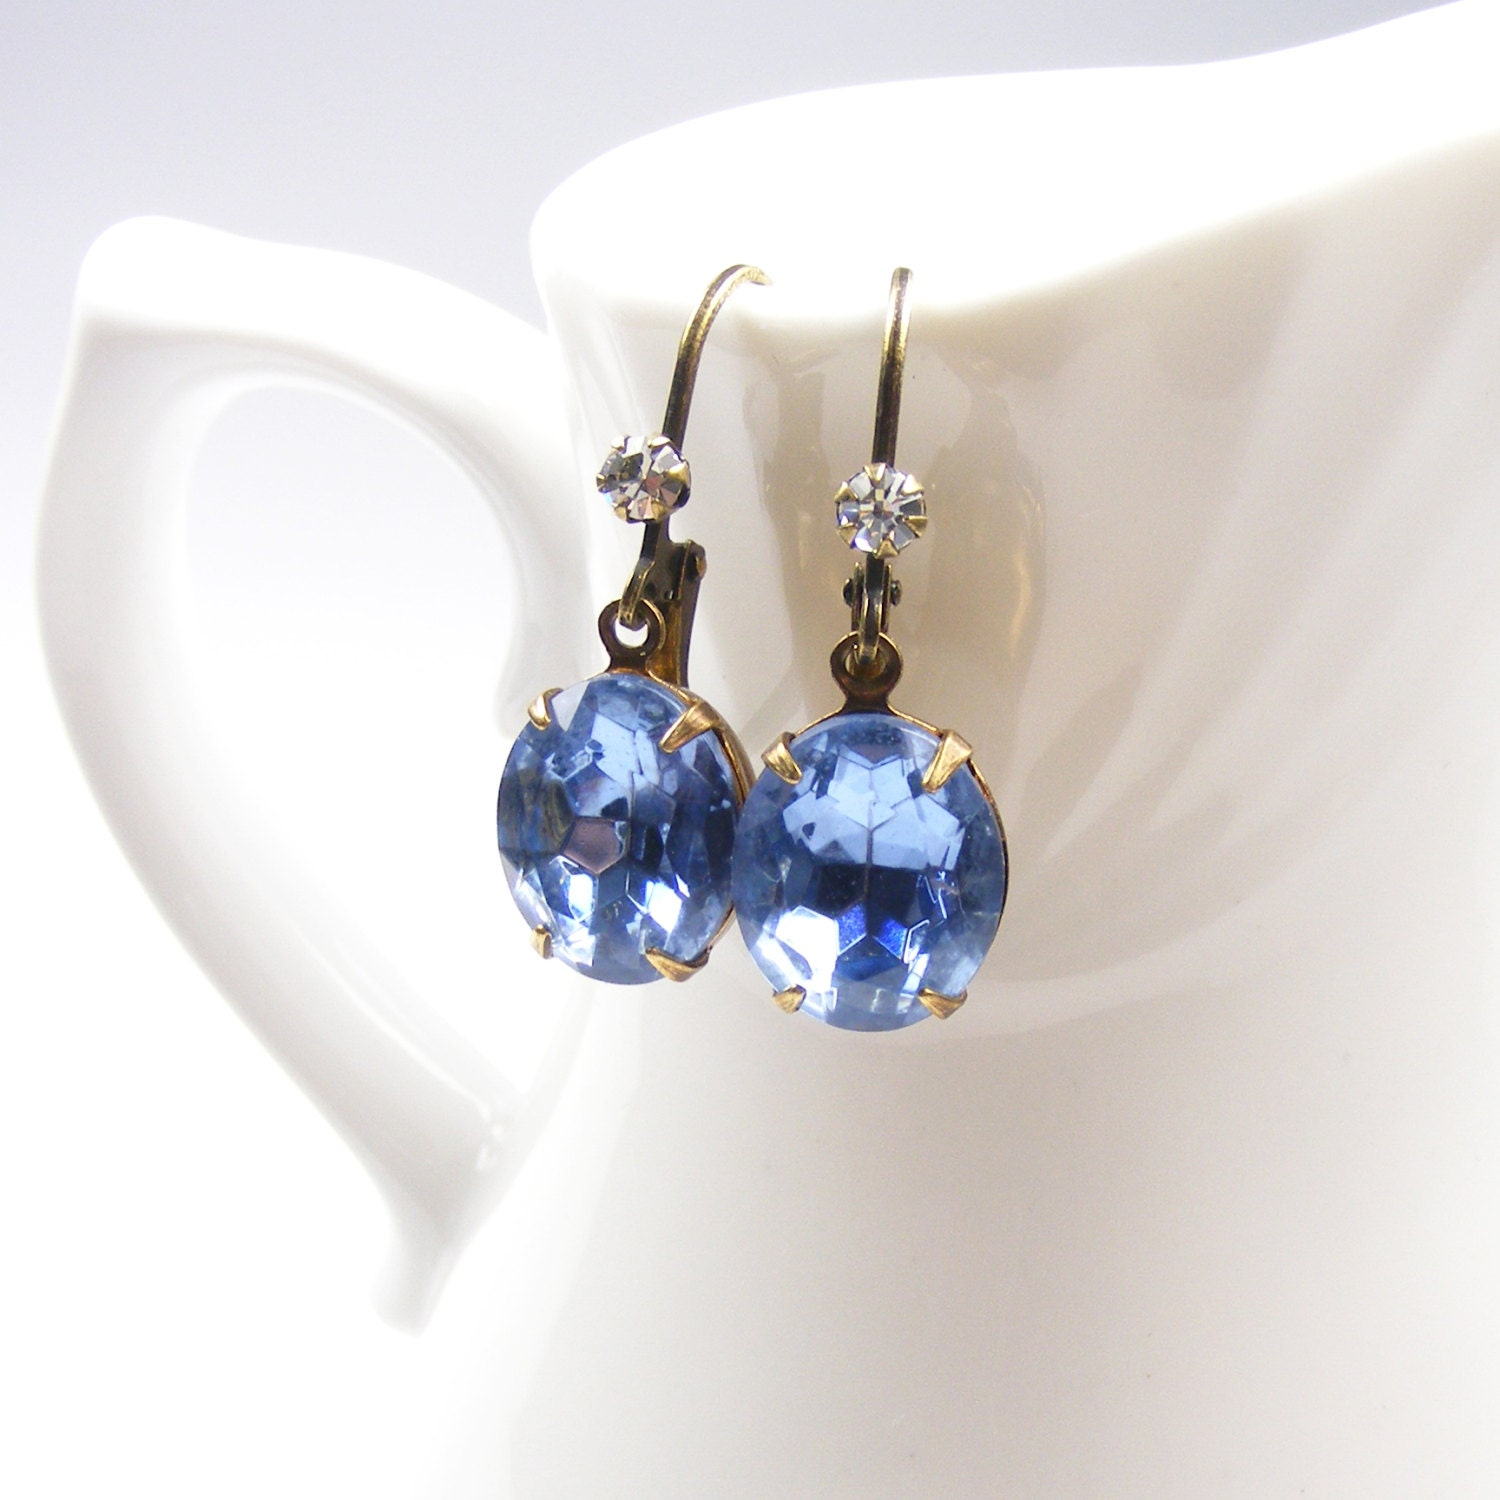 Blue Jewel Earrings, Light Sapphire Blue 1950s Vintage Crystal Earrings, Downton Abbey Inspired Jewelry